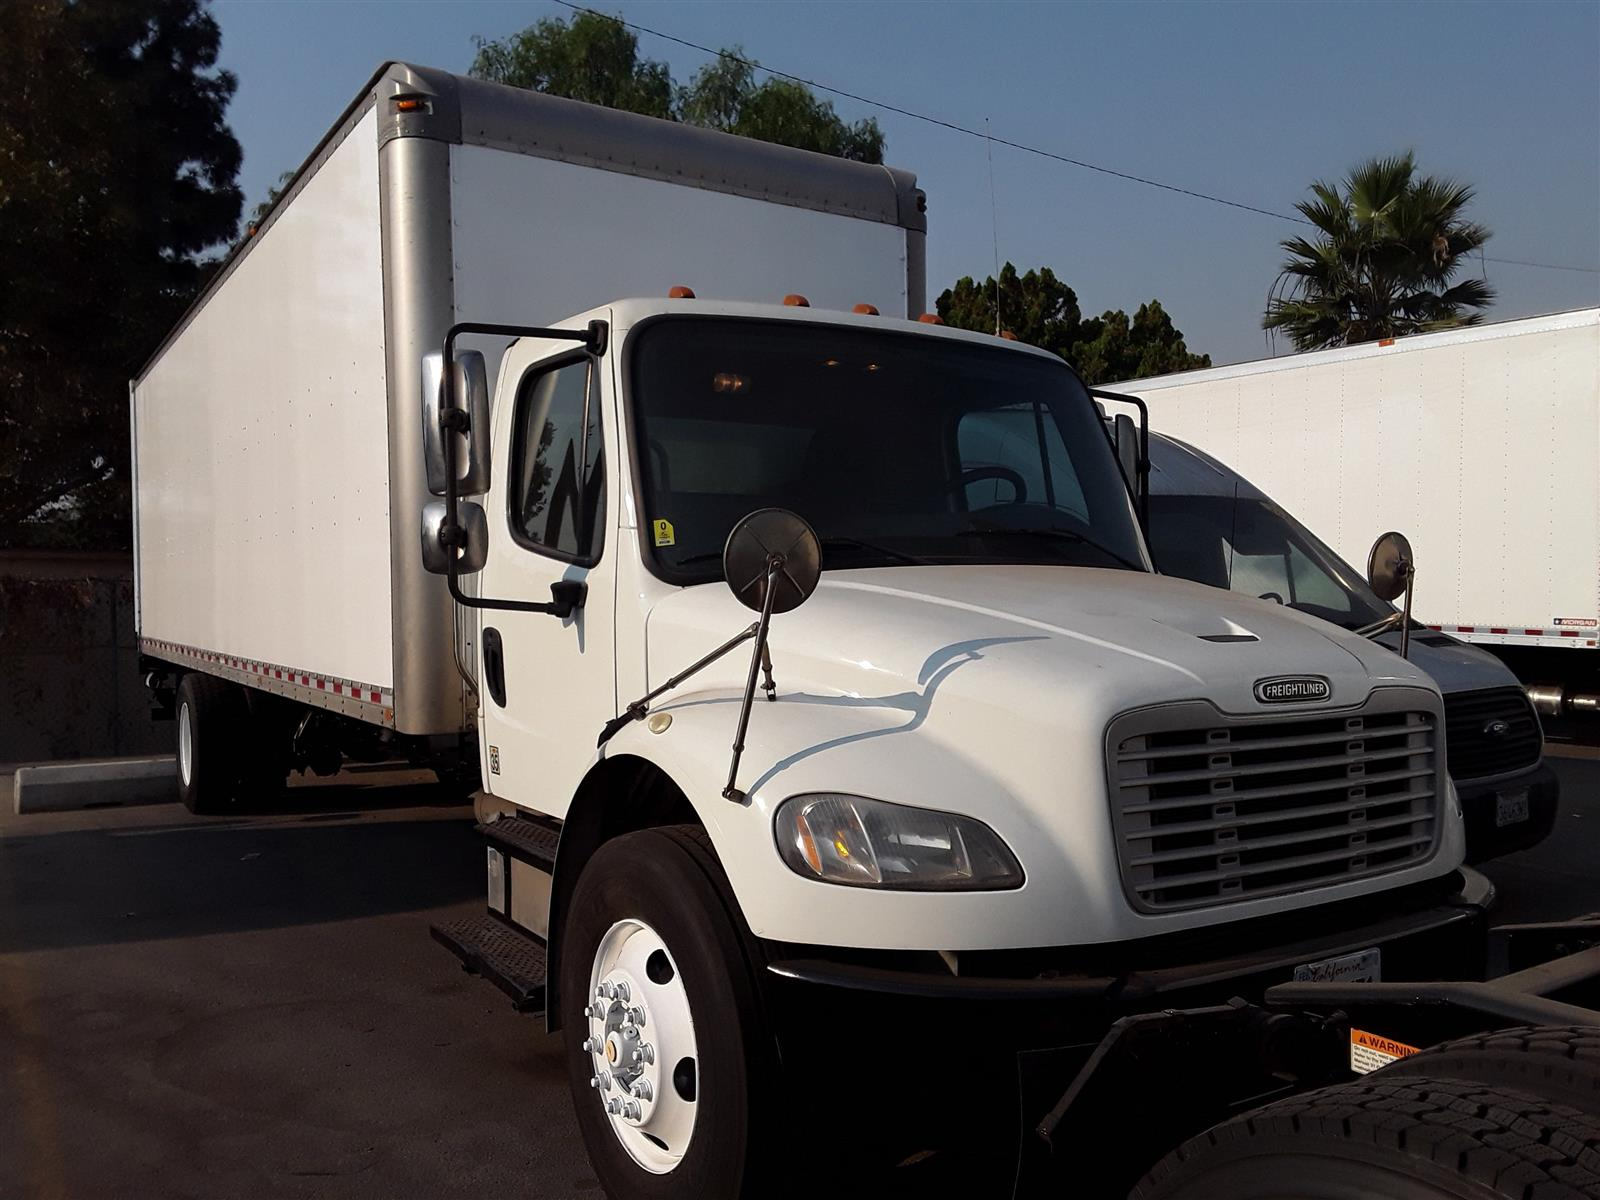 2017 Freightliner Truck 4x2, Dry Freight #663249 - photo 1